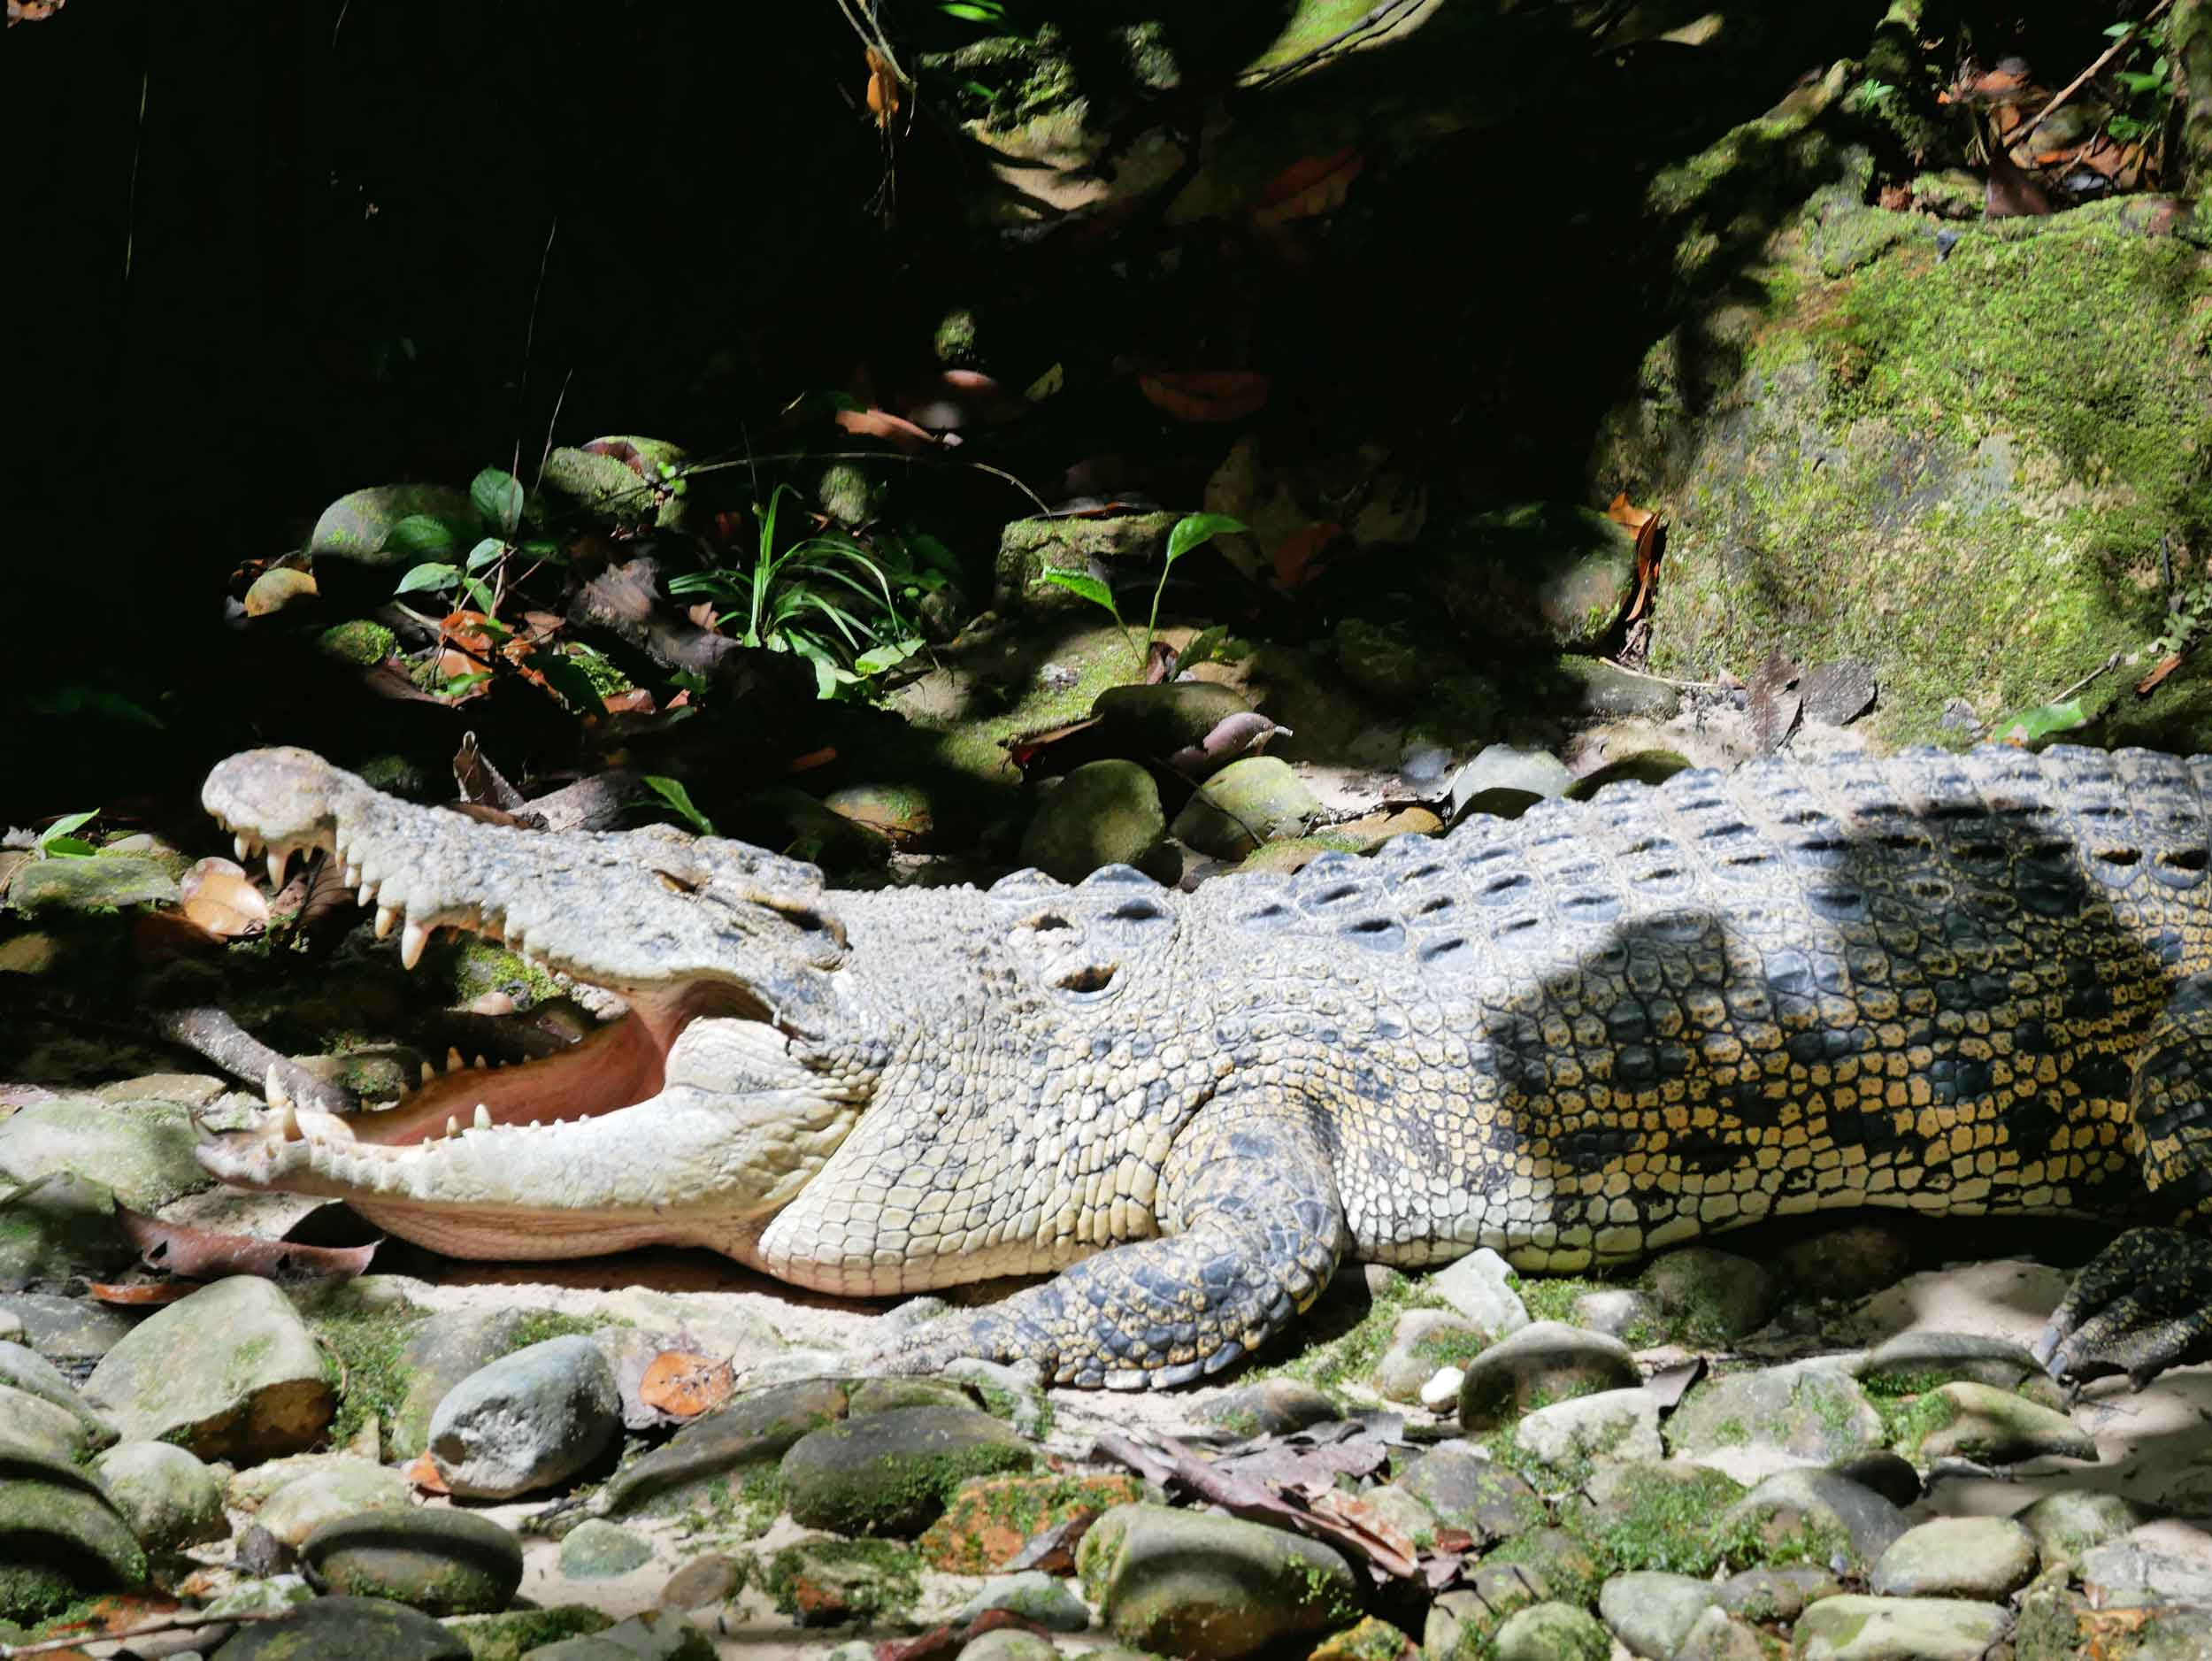 Sort of randomly, Semenggoh also rehabilitates crocs--we never quite figured out the connection!